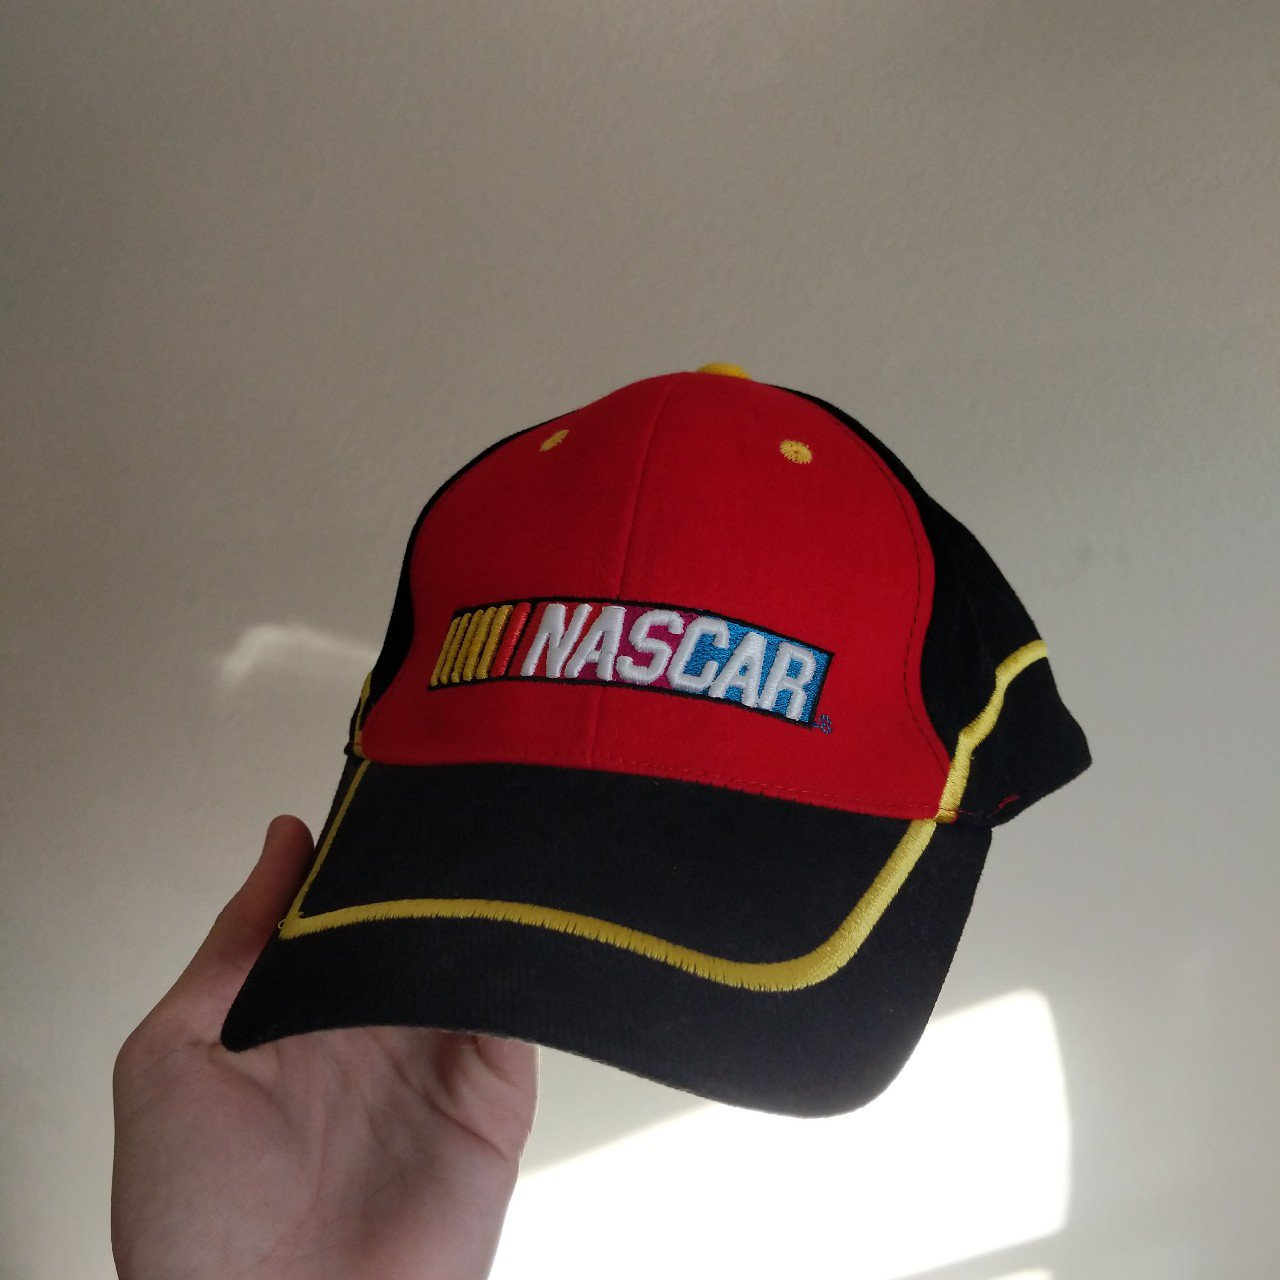 59840925cfd red and black Nascar racing.  5. NASCAR racing dad hat 🧢.  5. purple  number 11 Toyota Nascar